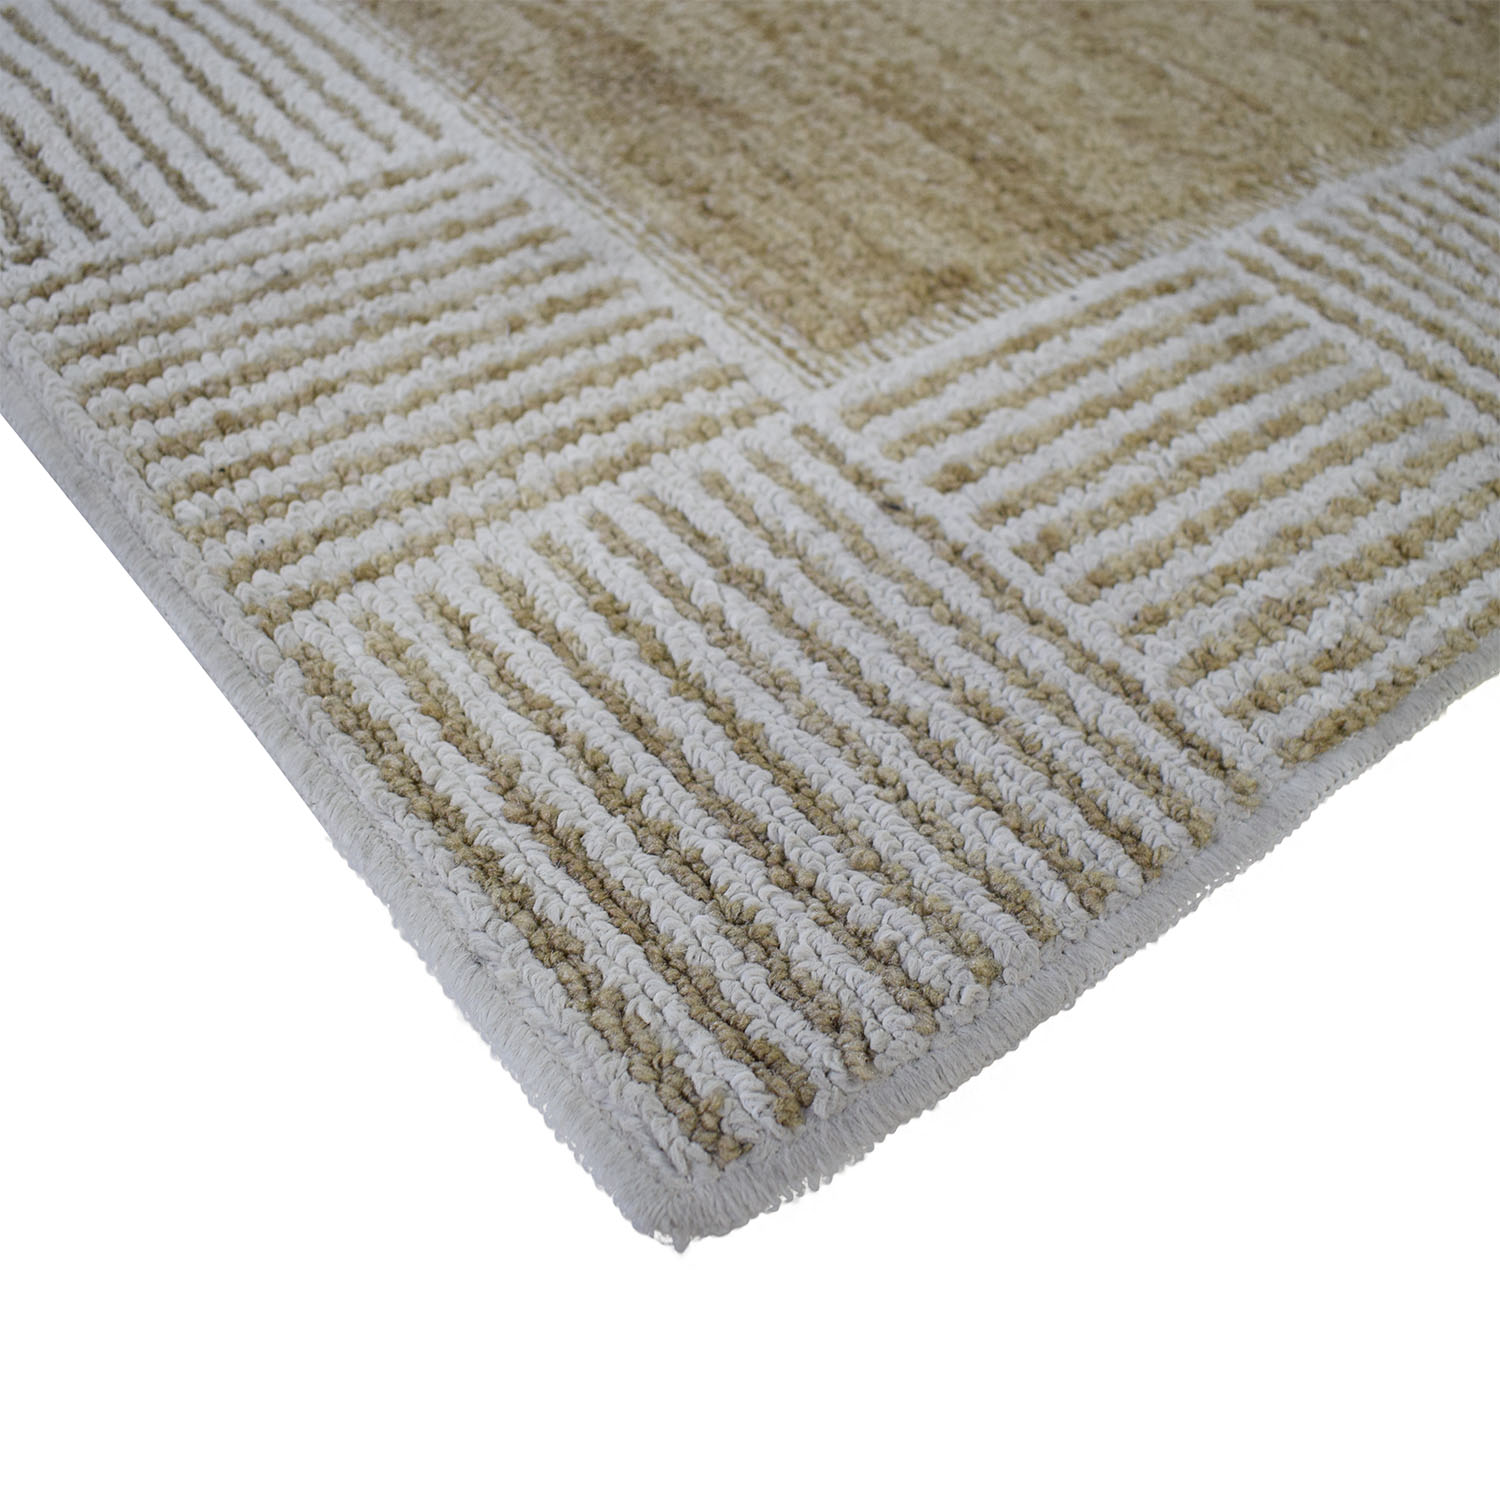 Linear Patterned Rug tan & white